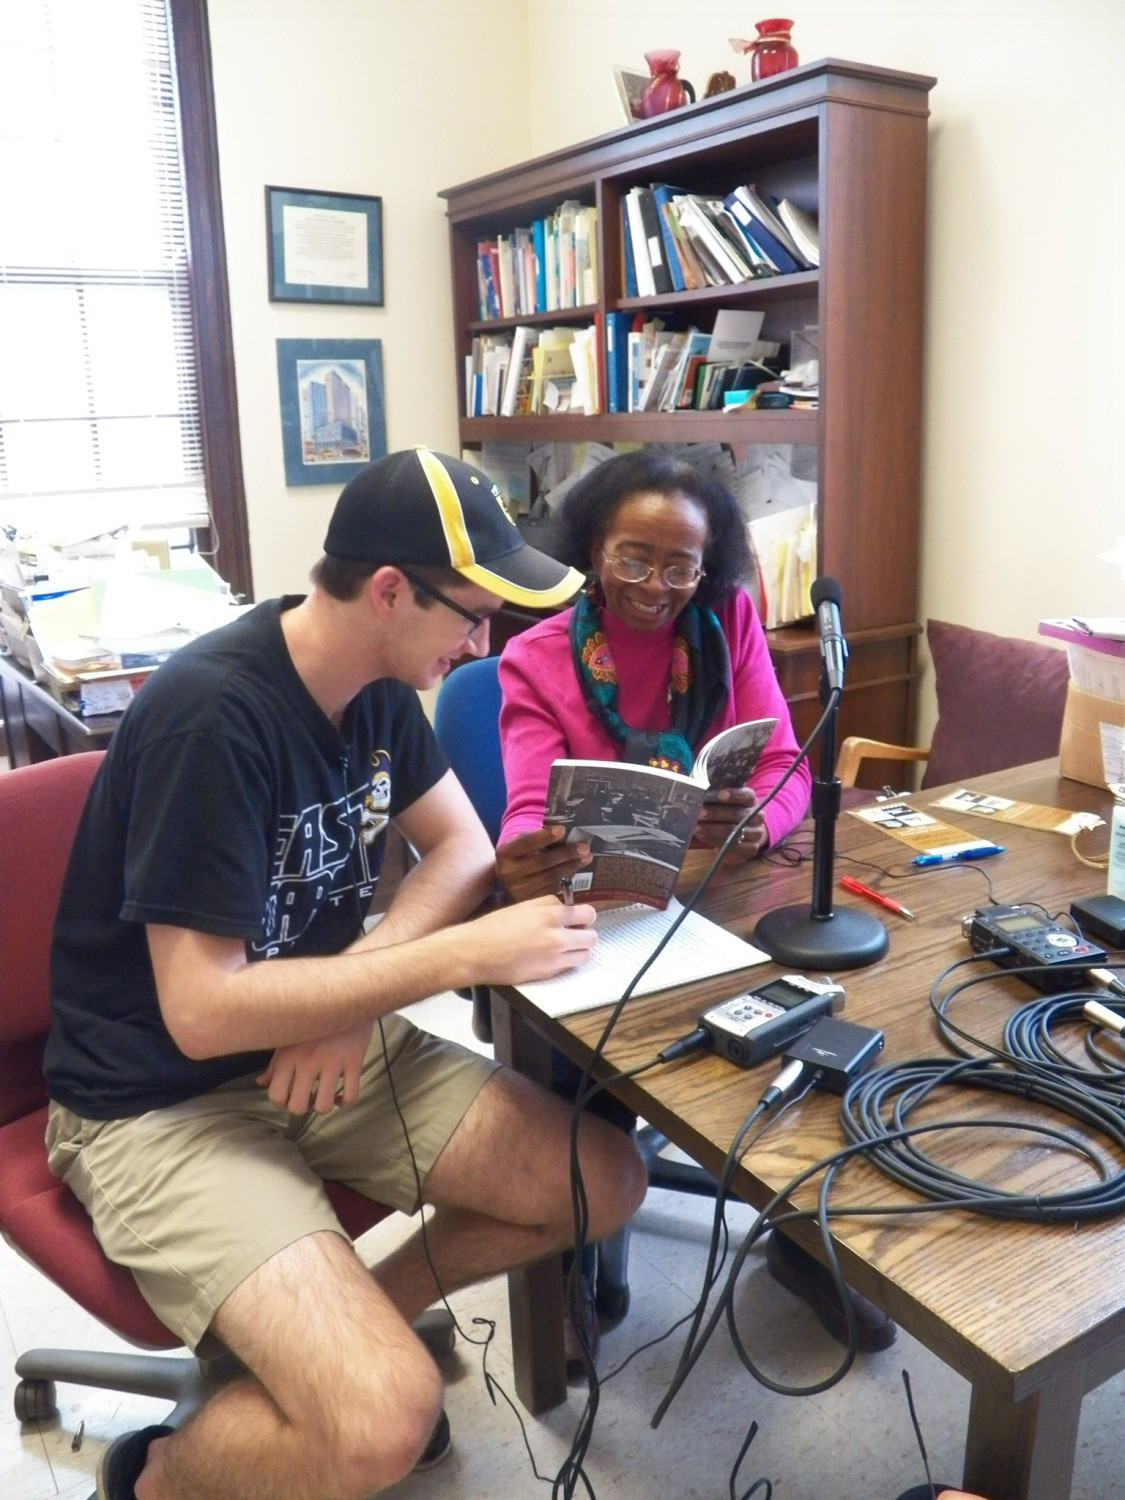 dr jackie burnside and student interview berea public art dr jackie burnside and student interview